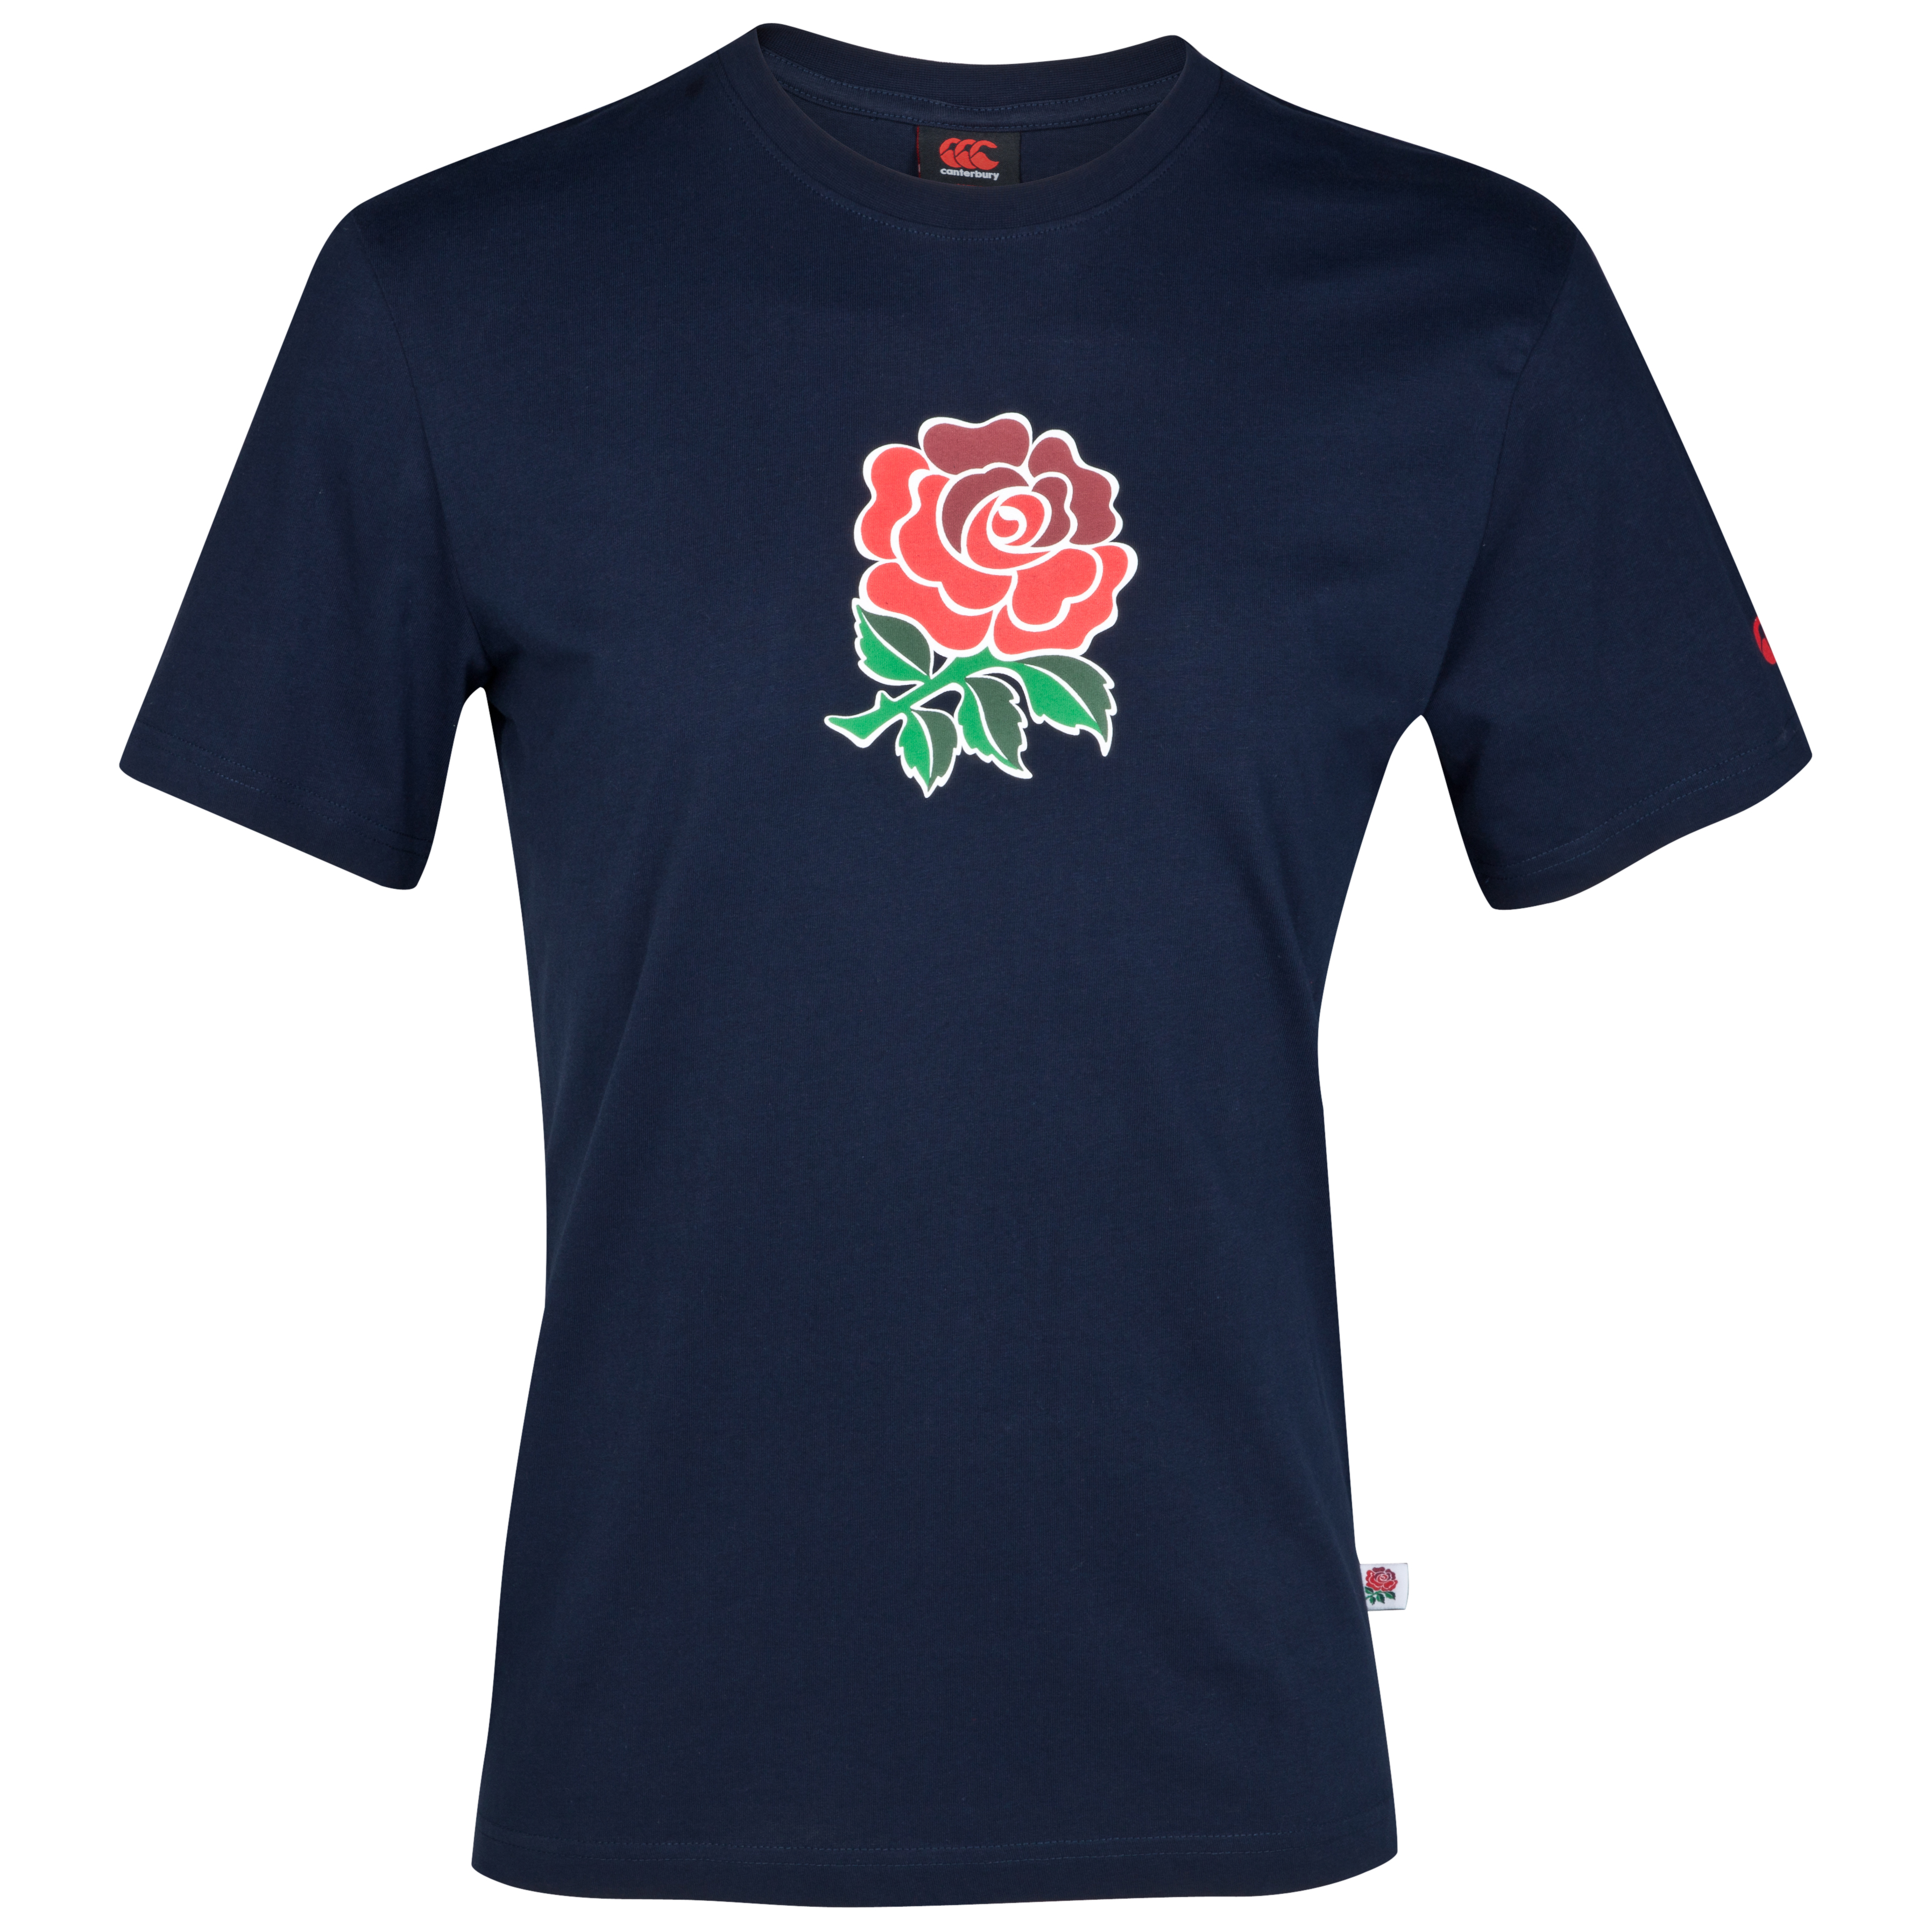 England Graphic Cotton T-Shirt - Kids - Navy